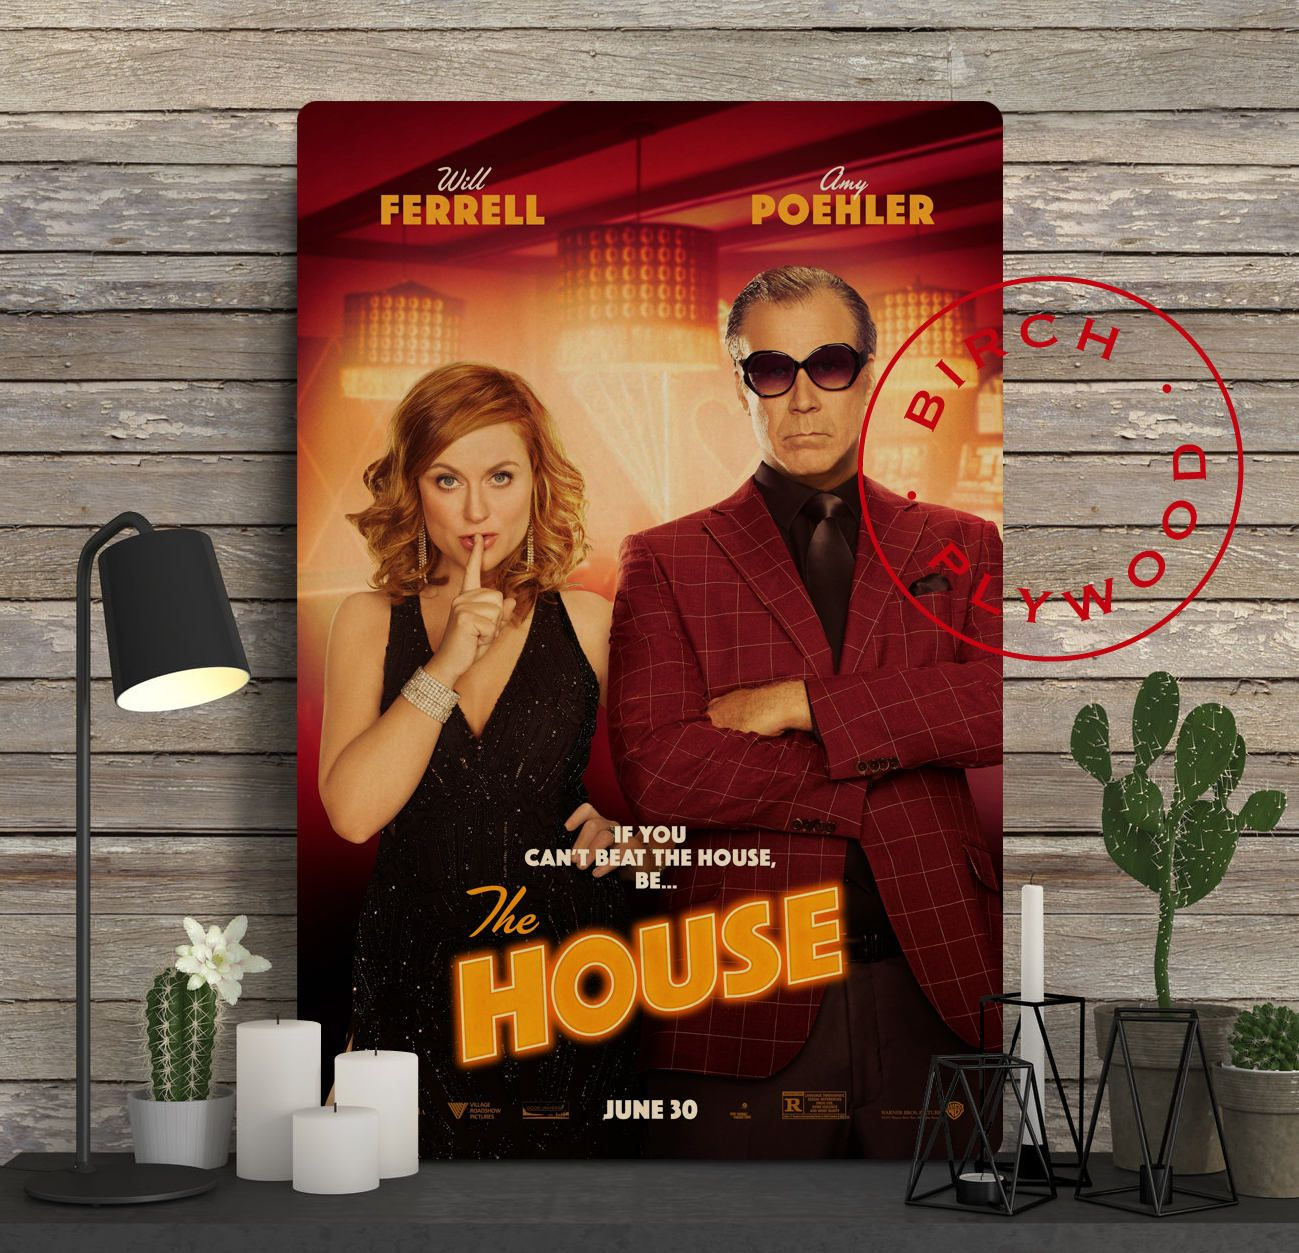 THE HOUSE Movie - Poster on Wood, Will Ferrell, Amy Poehler, Ryan ...